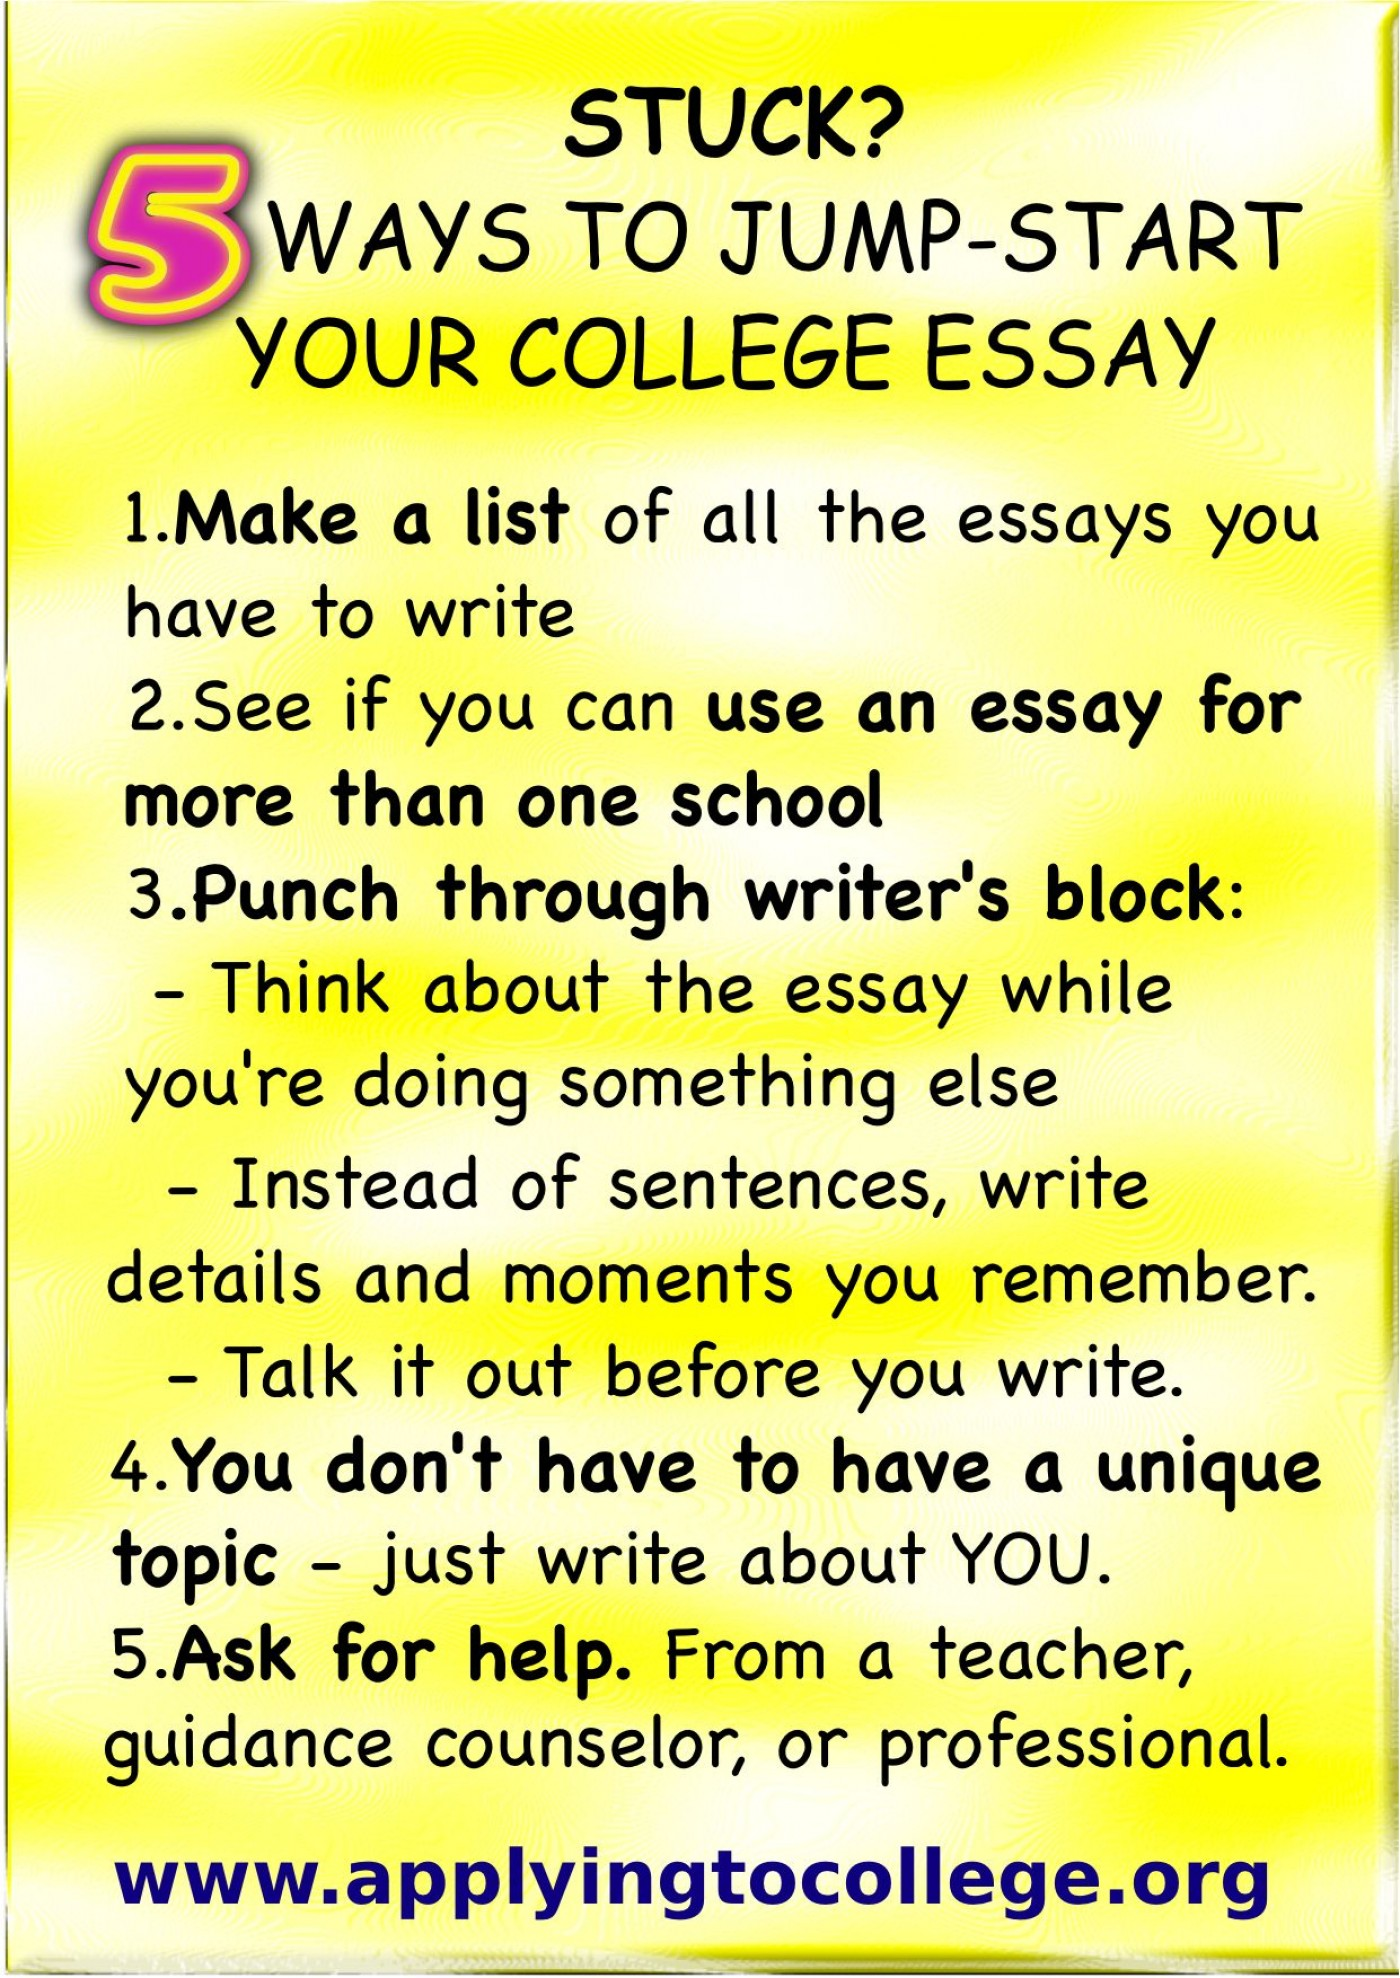 018 Stress Essay Awesome Questions Outline Pdf 1400